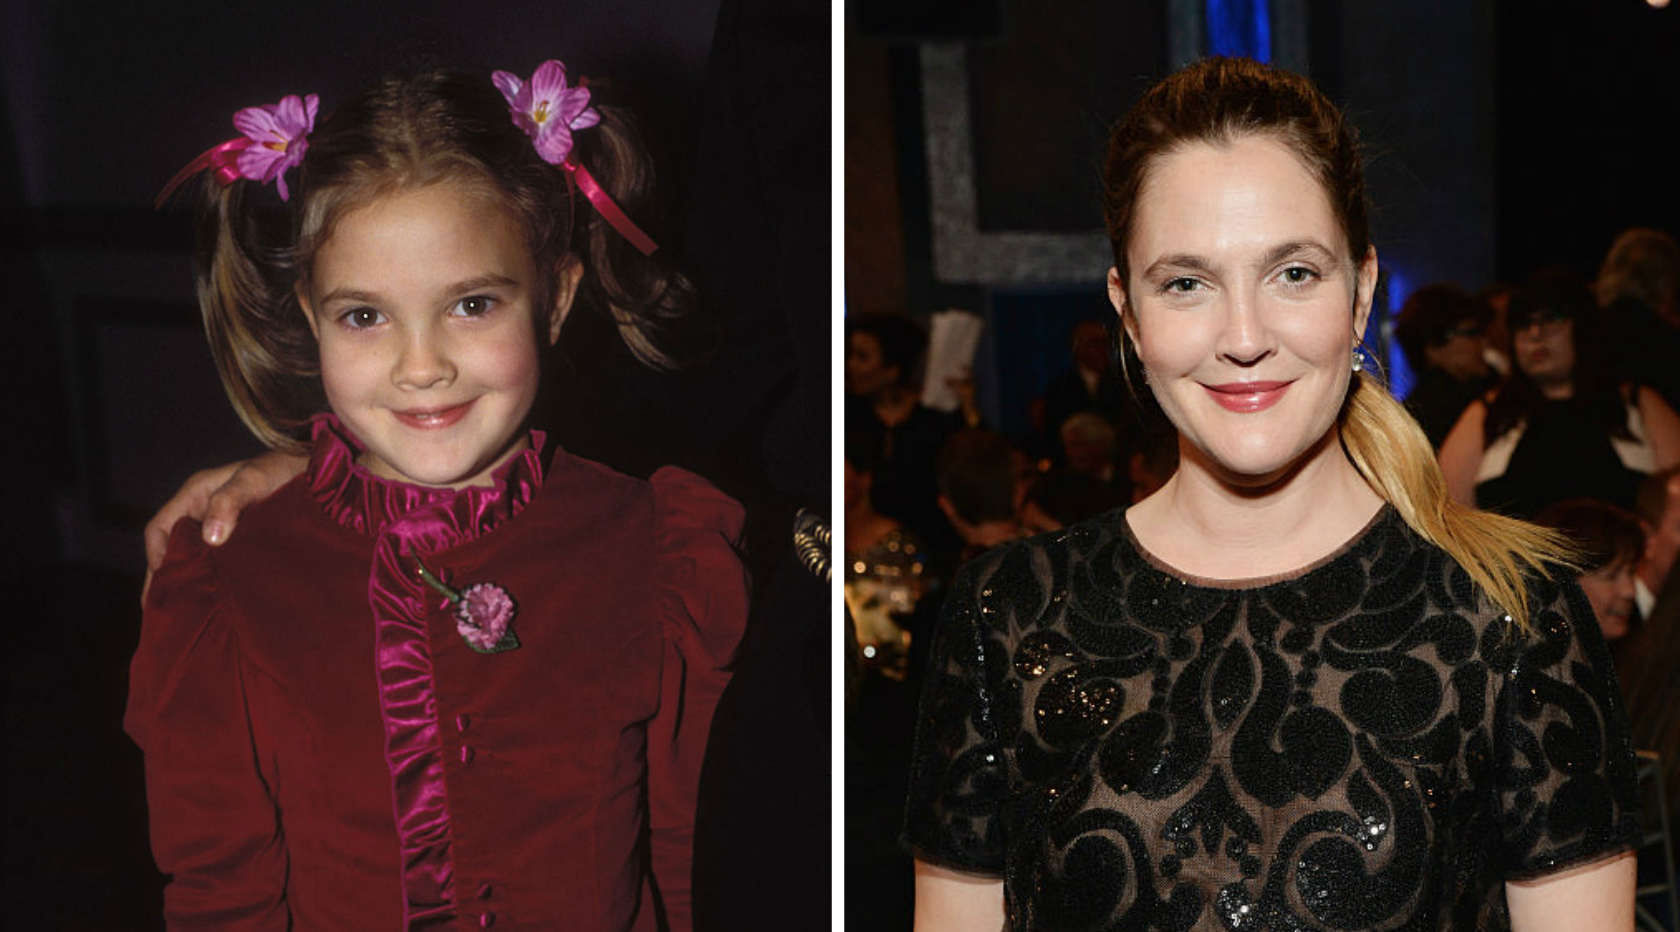 We unearthed Drew Barrymore's letter to her pen pal from 1982, and it's far too cute